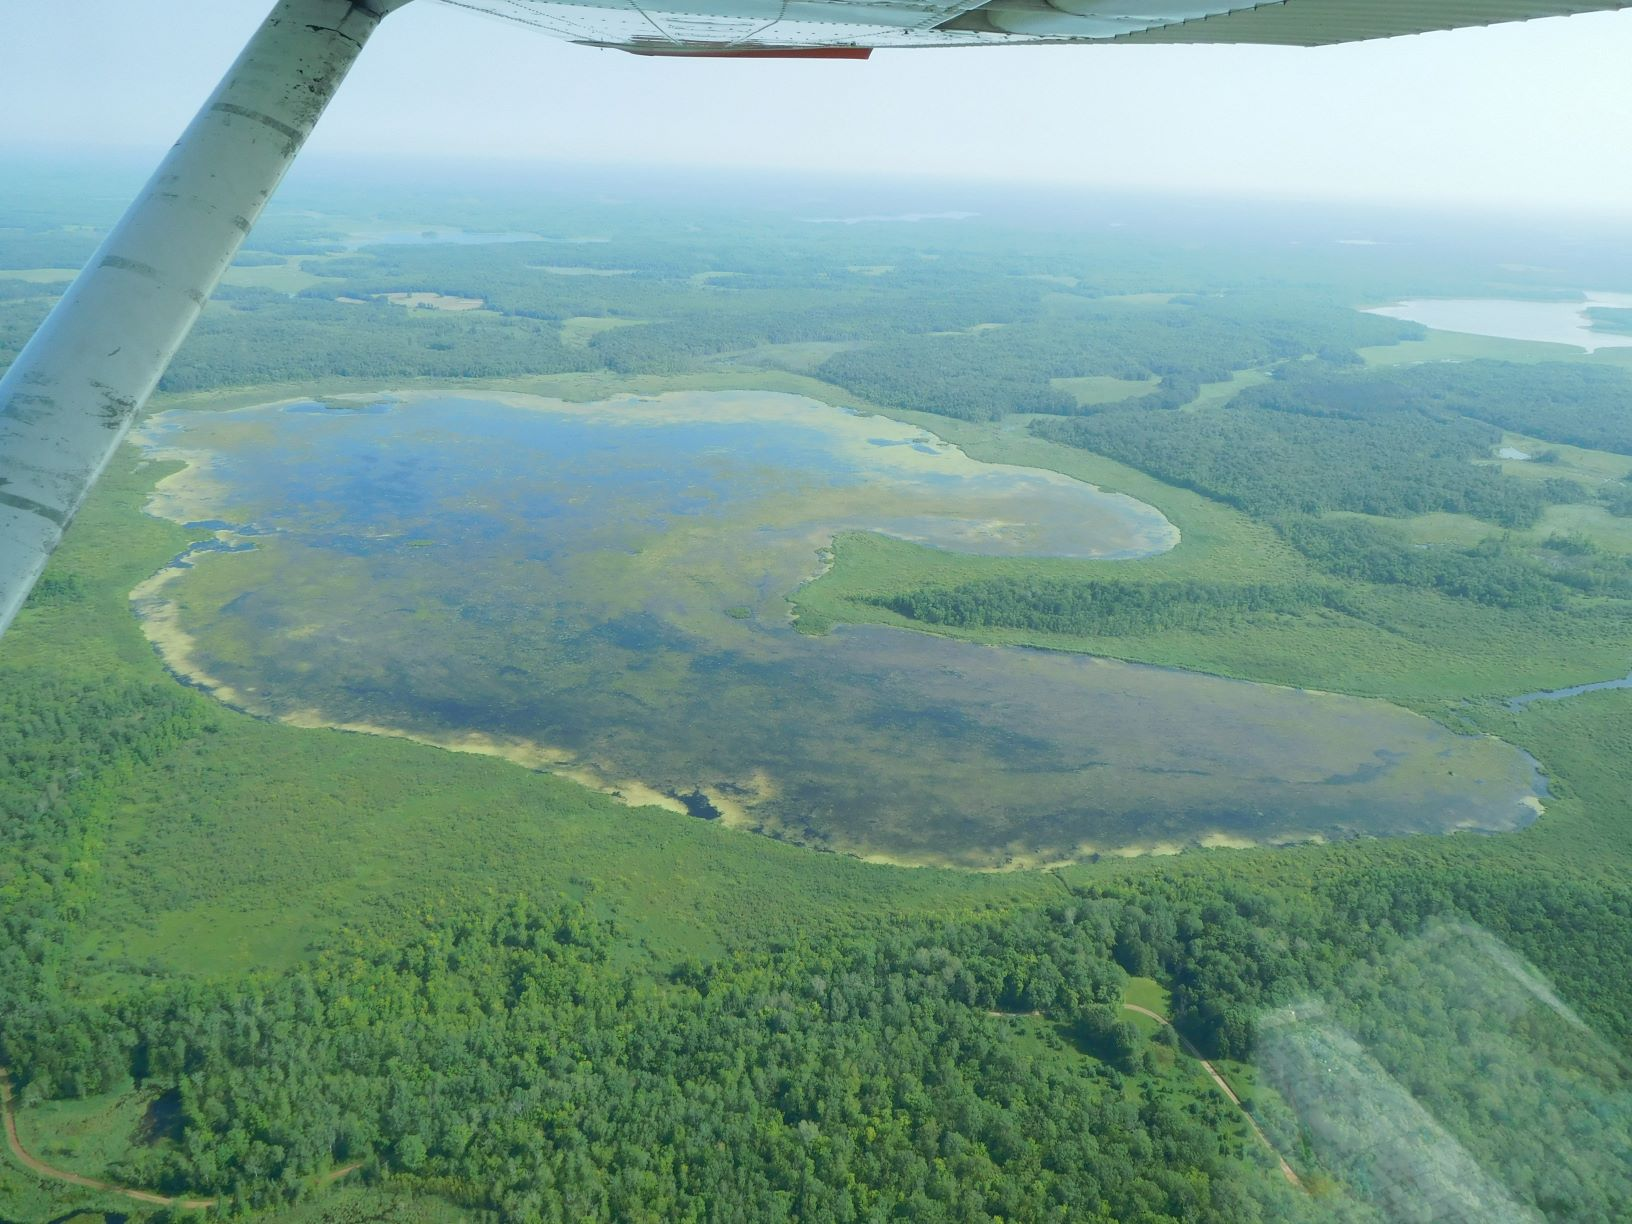 Aerial view of rice waters in northern Minnesota, Great Lakes Indian Fish & Wildlife Commission